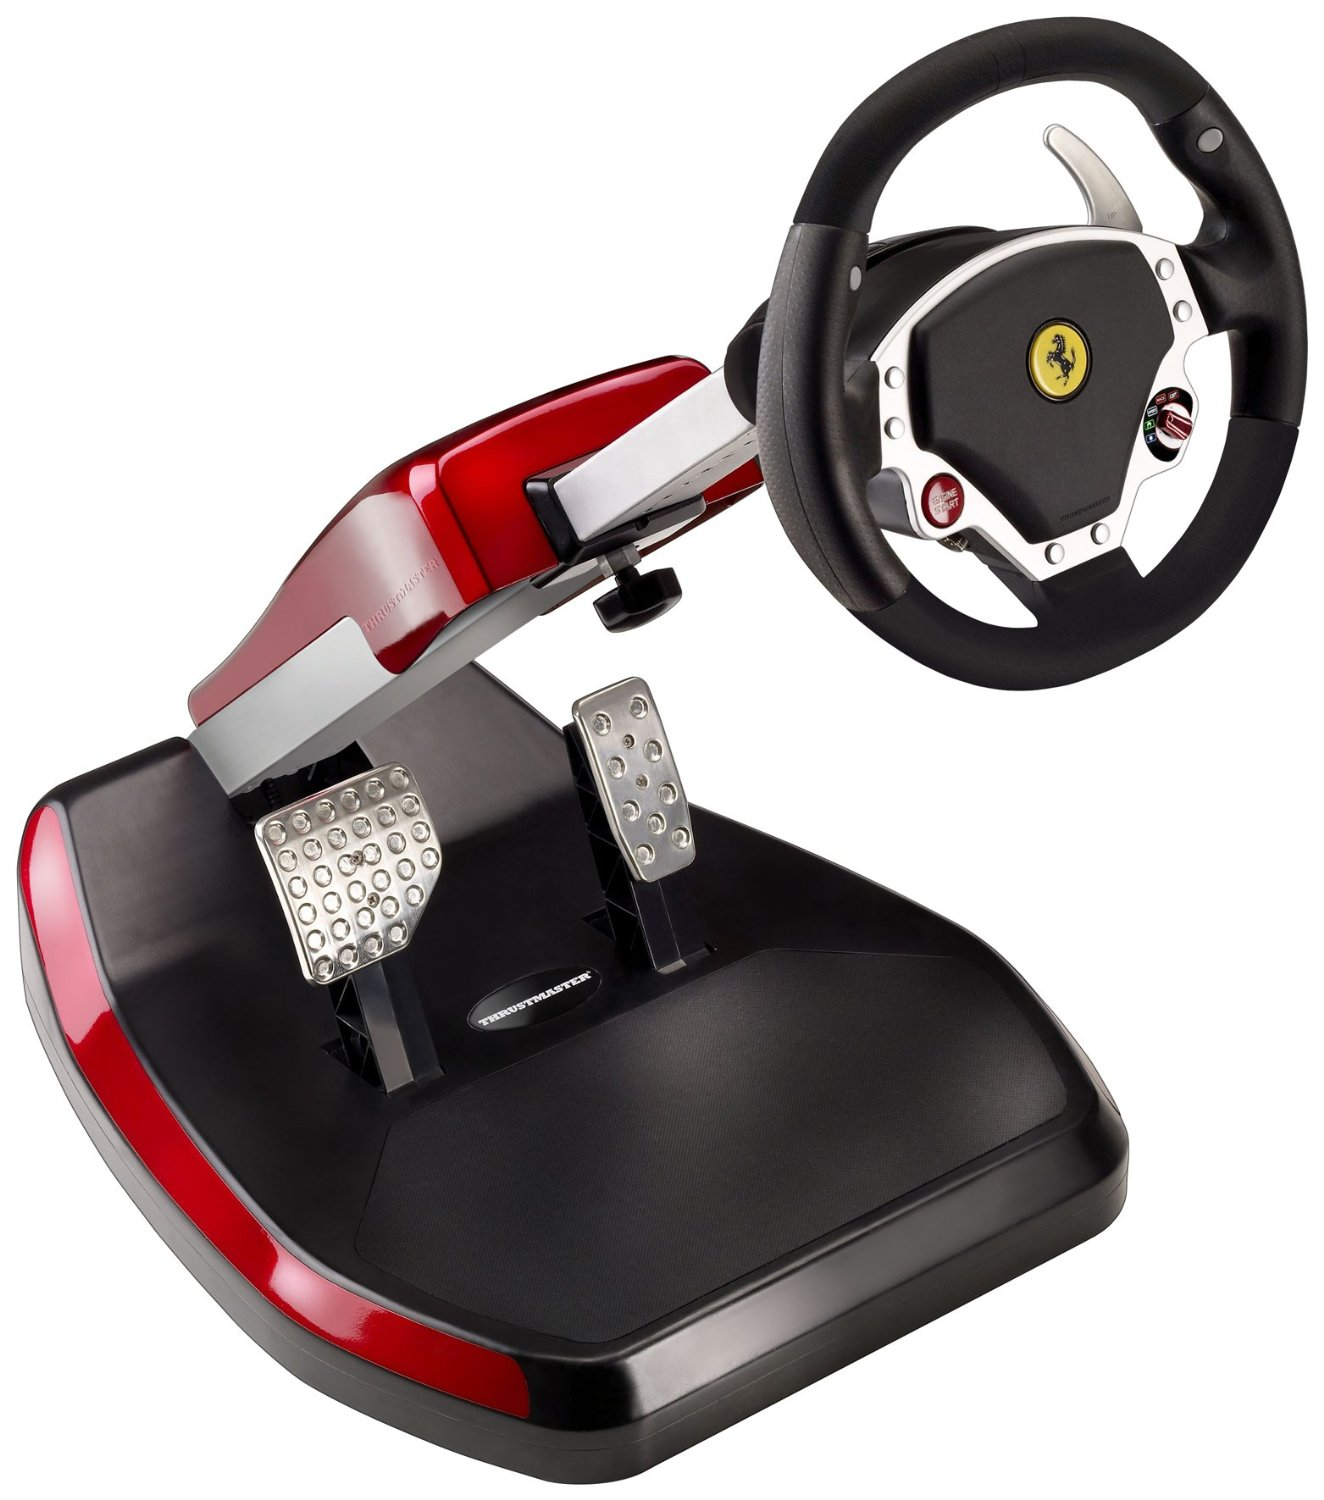 volante y pedales ps3 thrustmaster compatible con pc. Black Bedroom Furniture Sets. Home Design Ideas